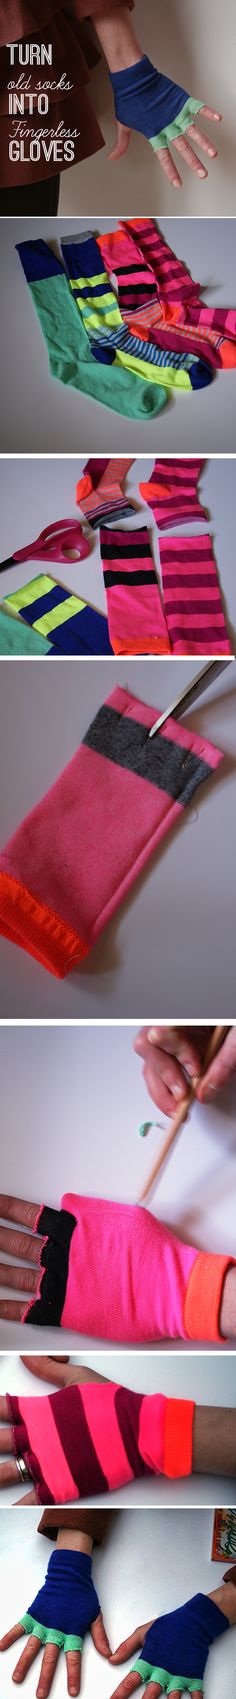 DIY old socks into fingerless gloves